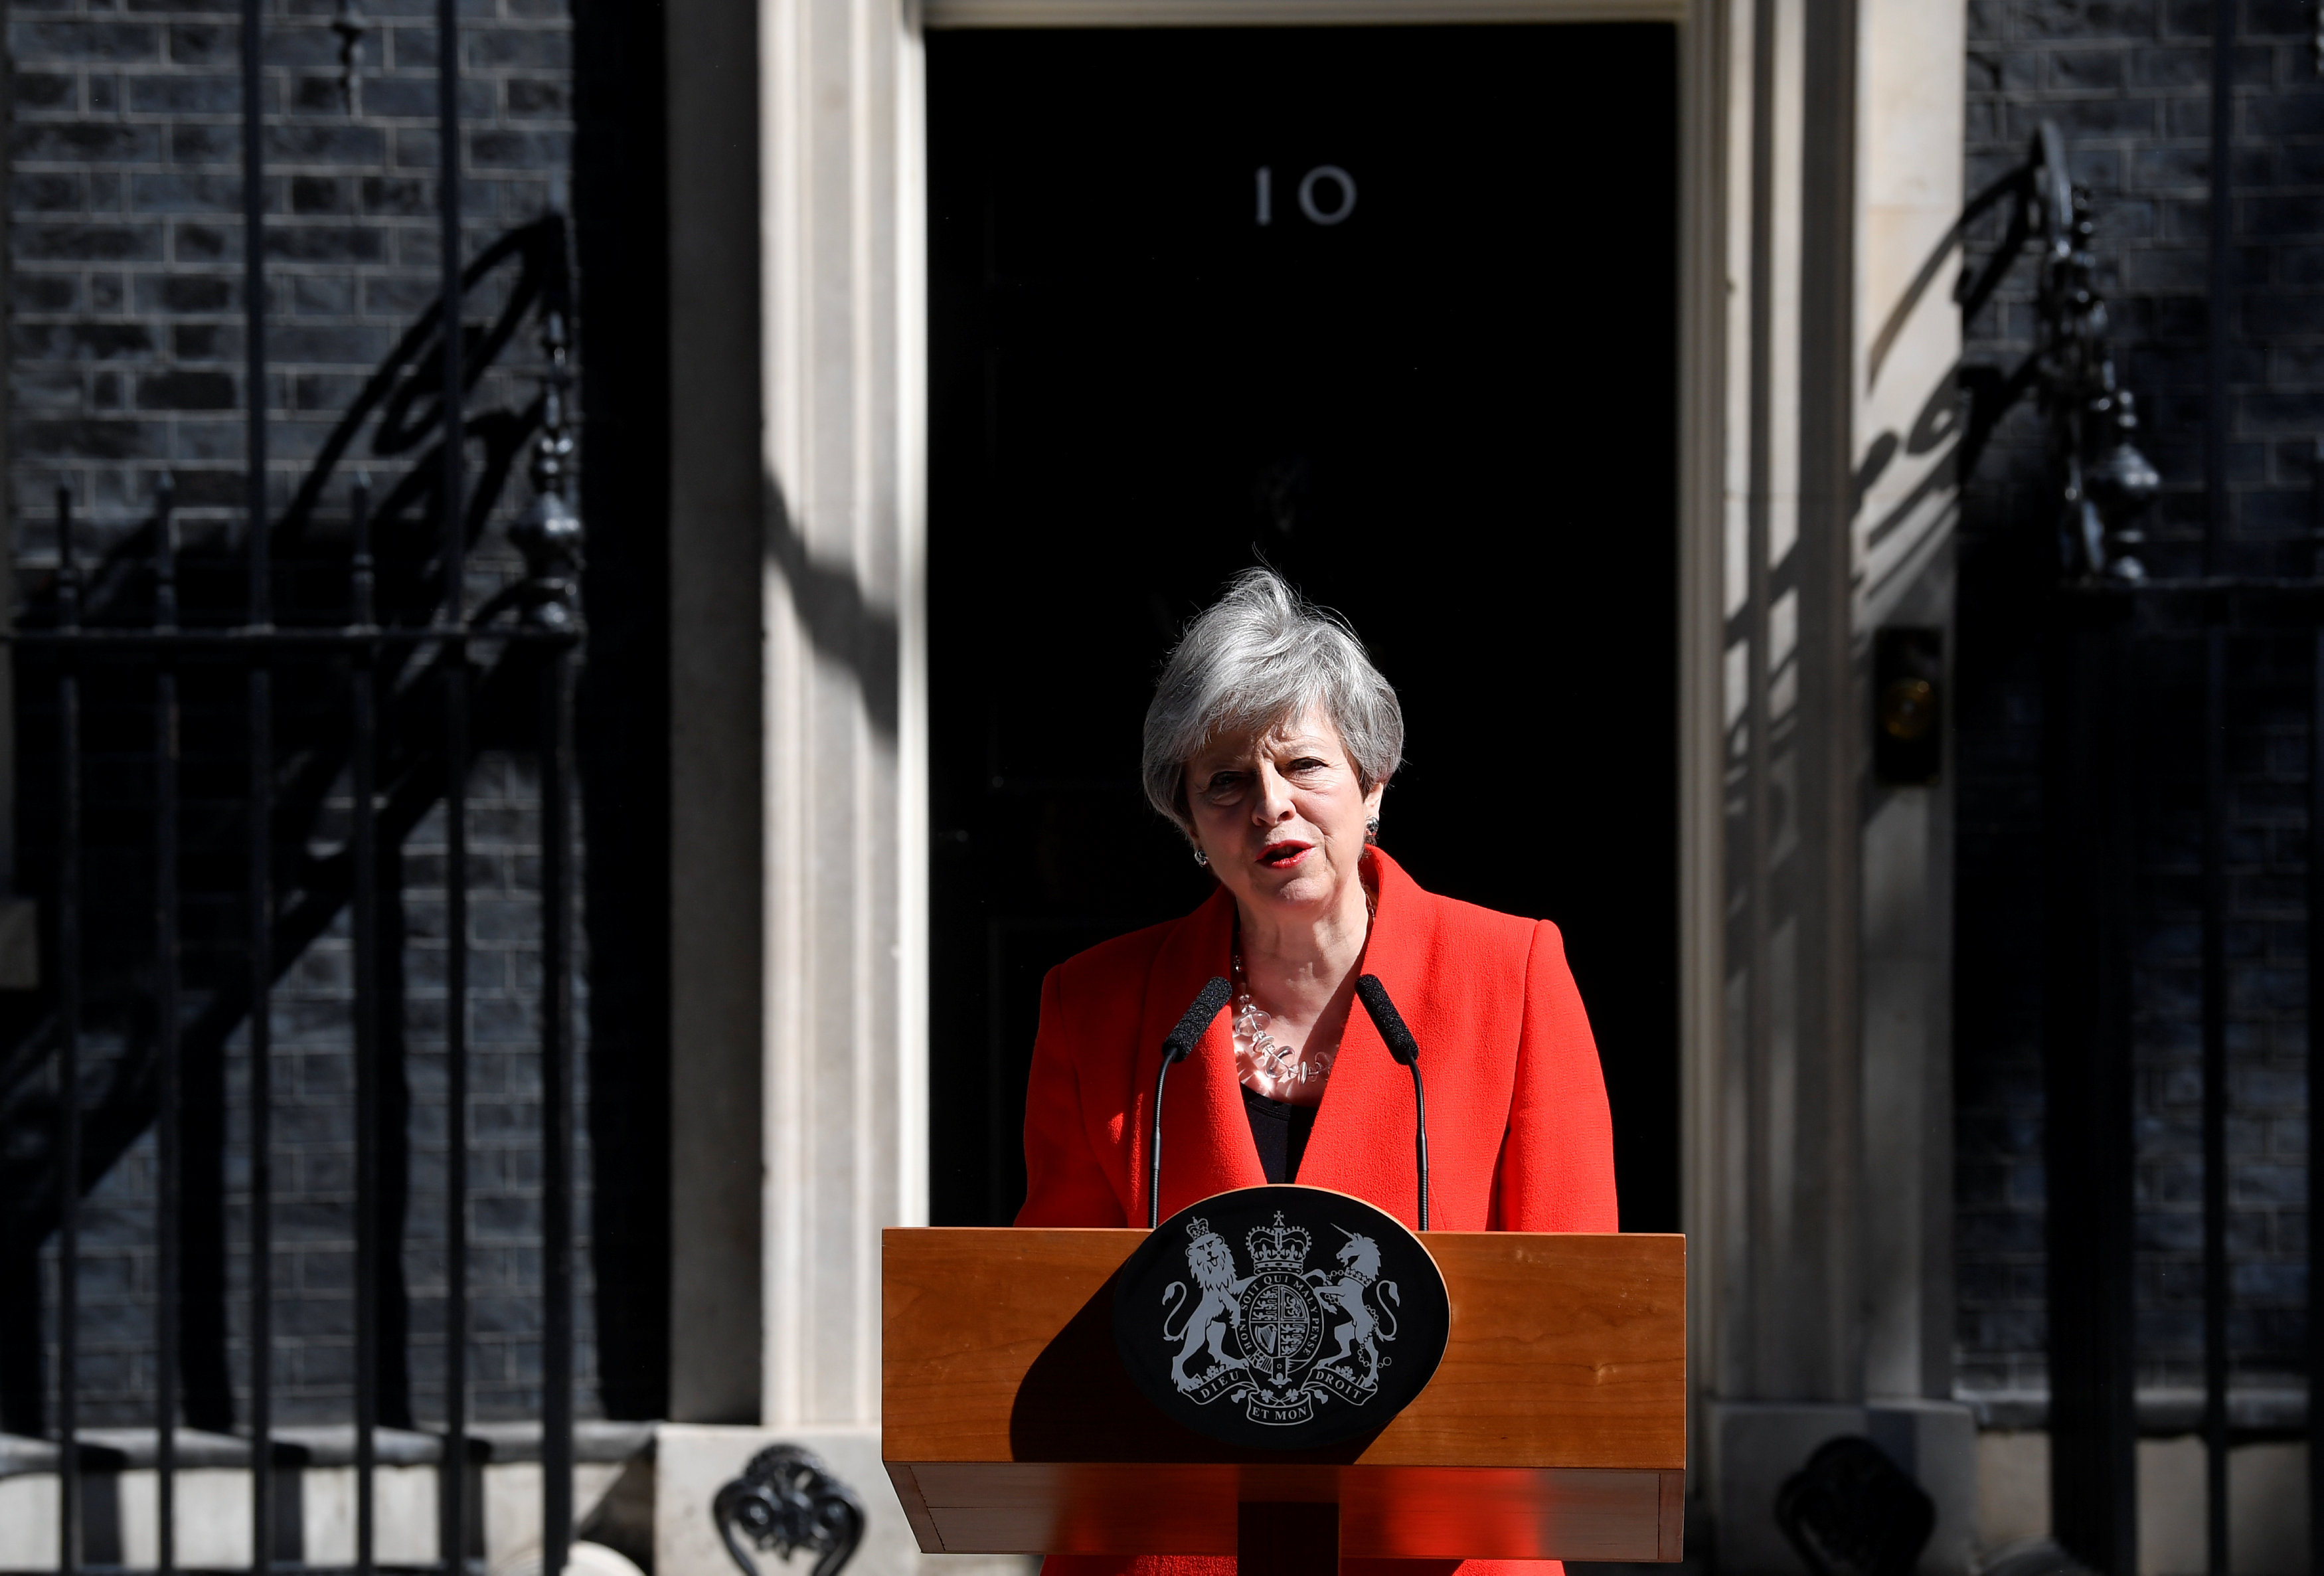 British Prime Minister Theresa May delivers a statement in London, Britain, May 24, 2019. REUTERS/Toby Melville